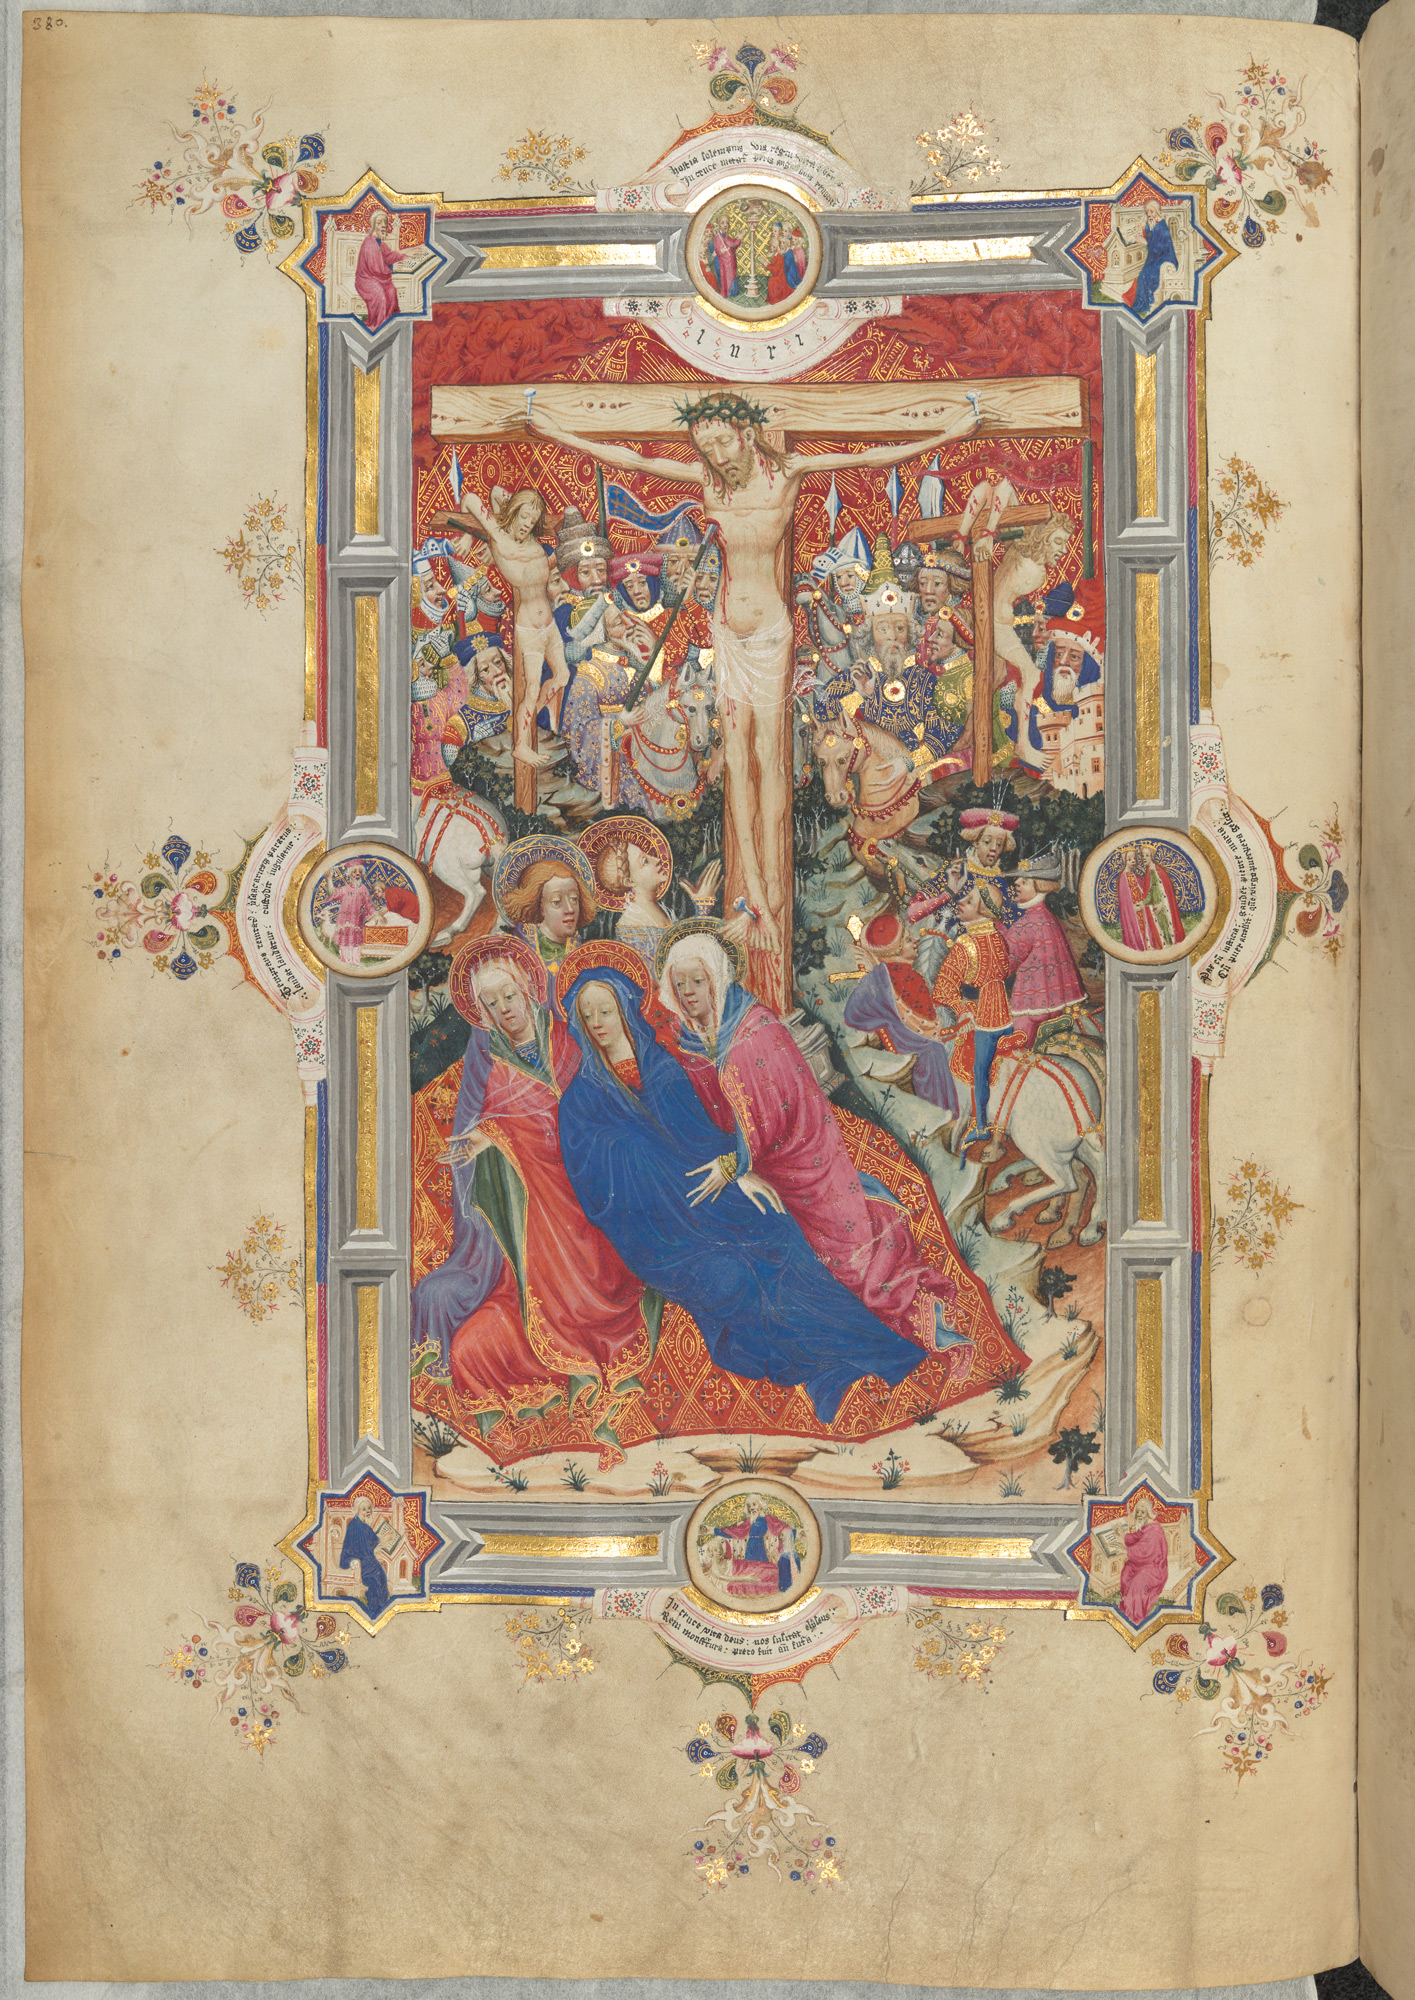 1399-1407 The Crucifixion, Sherborne Missal BL Add MS 74236, p. 380